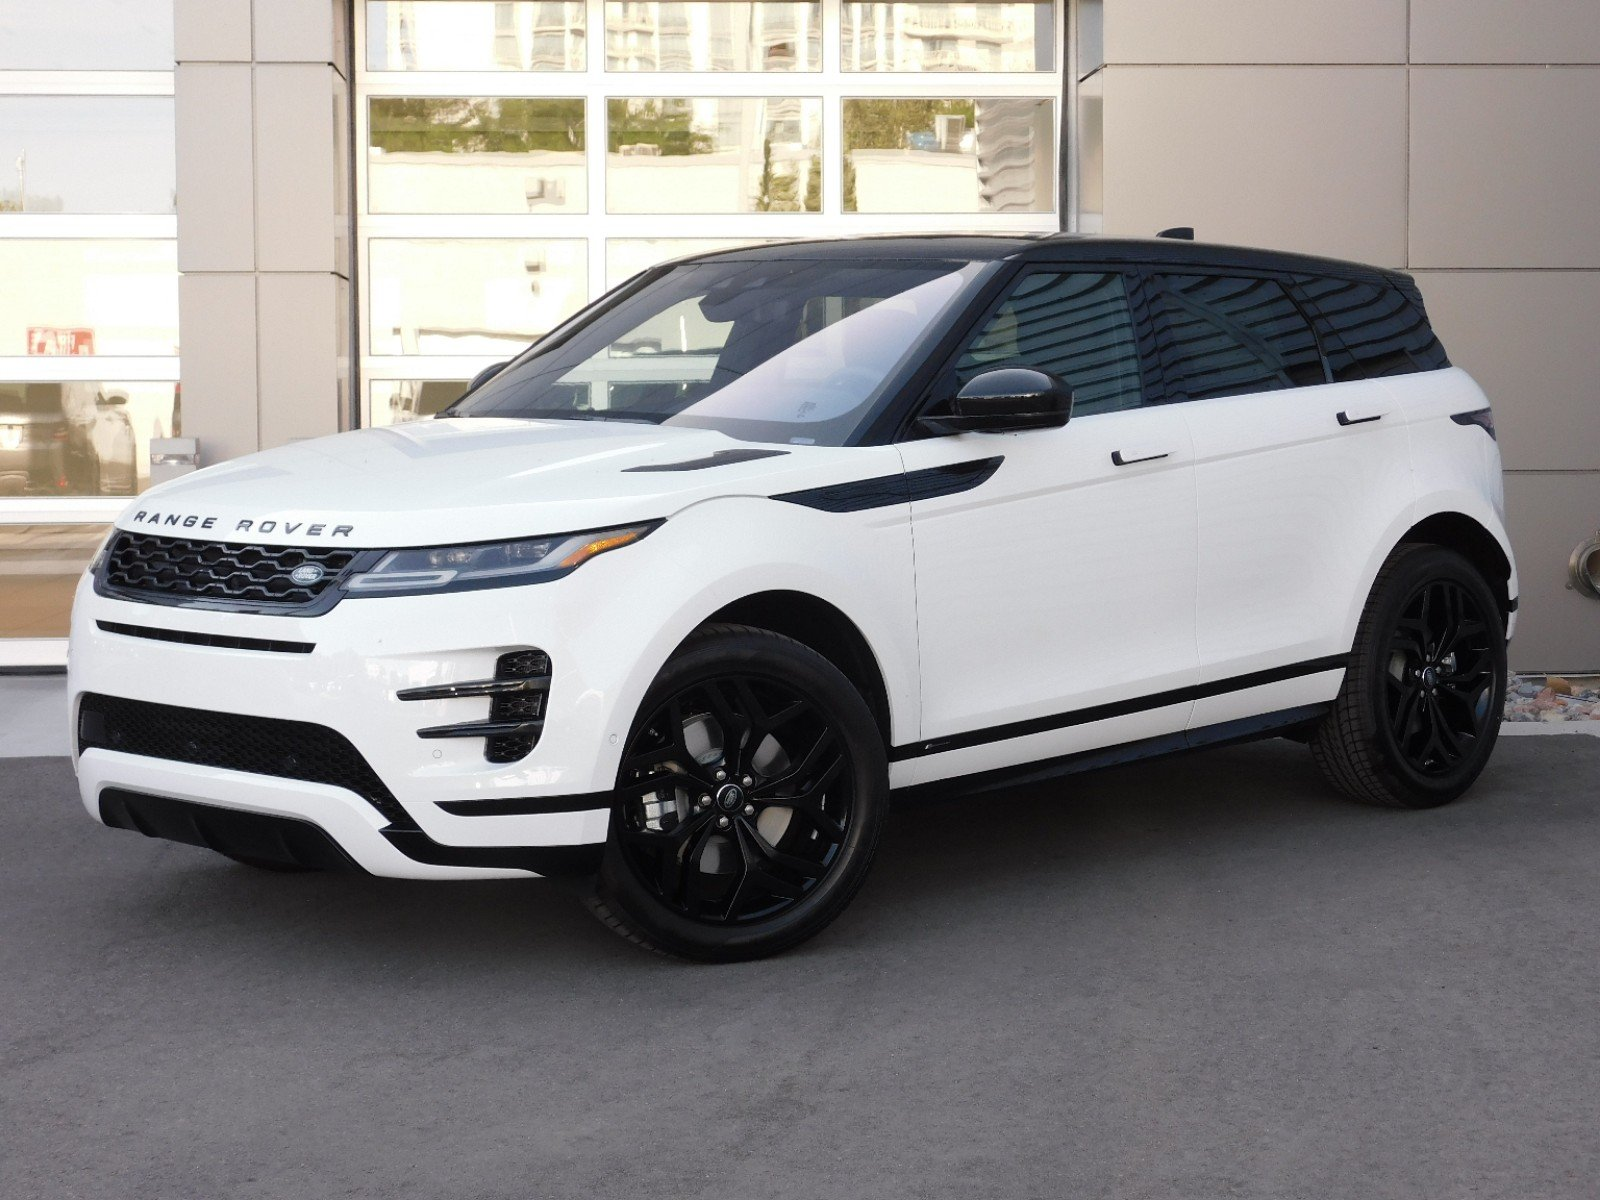 New 2020 Land Rover Range Rover Evoque R-Dynamic SE